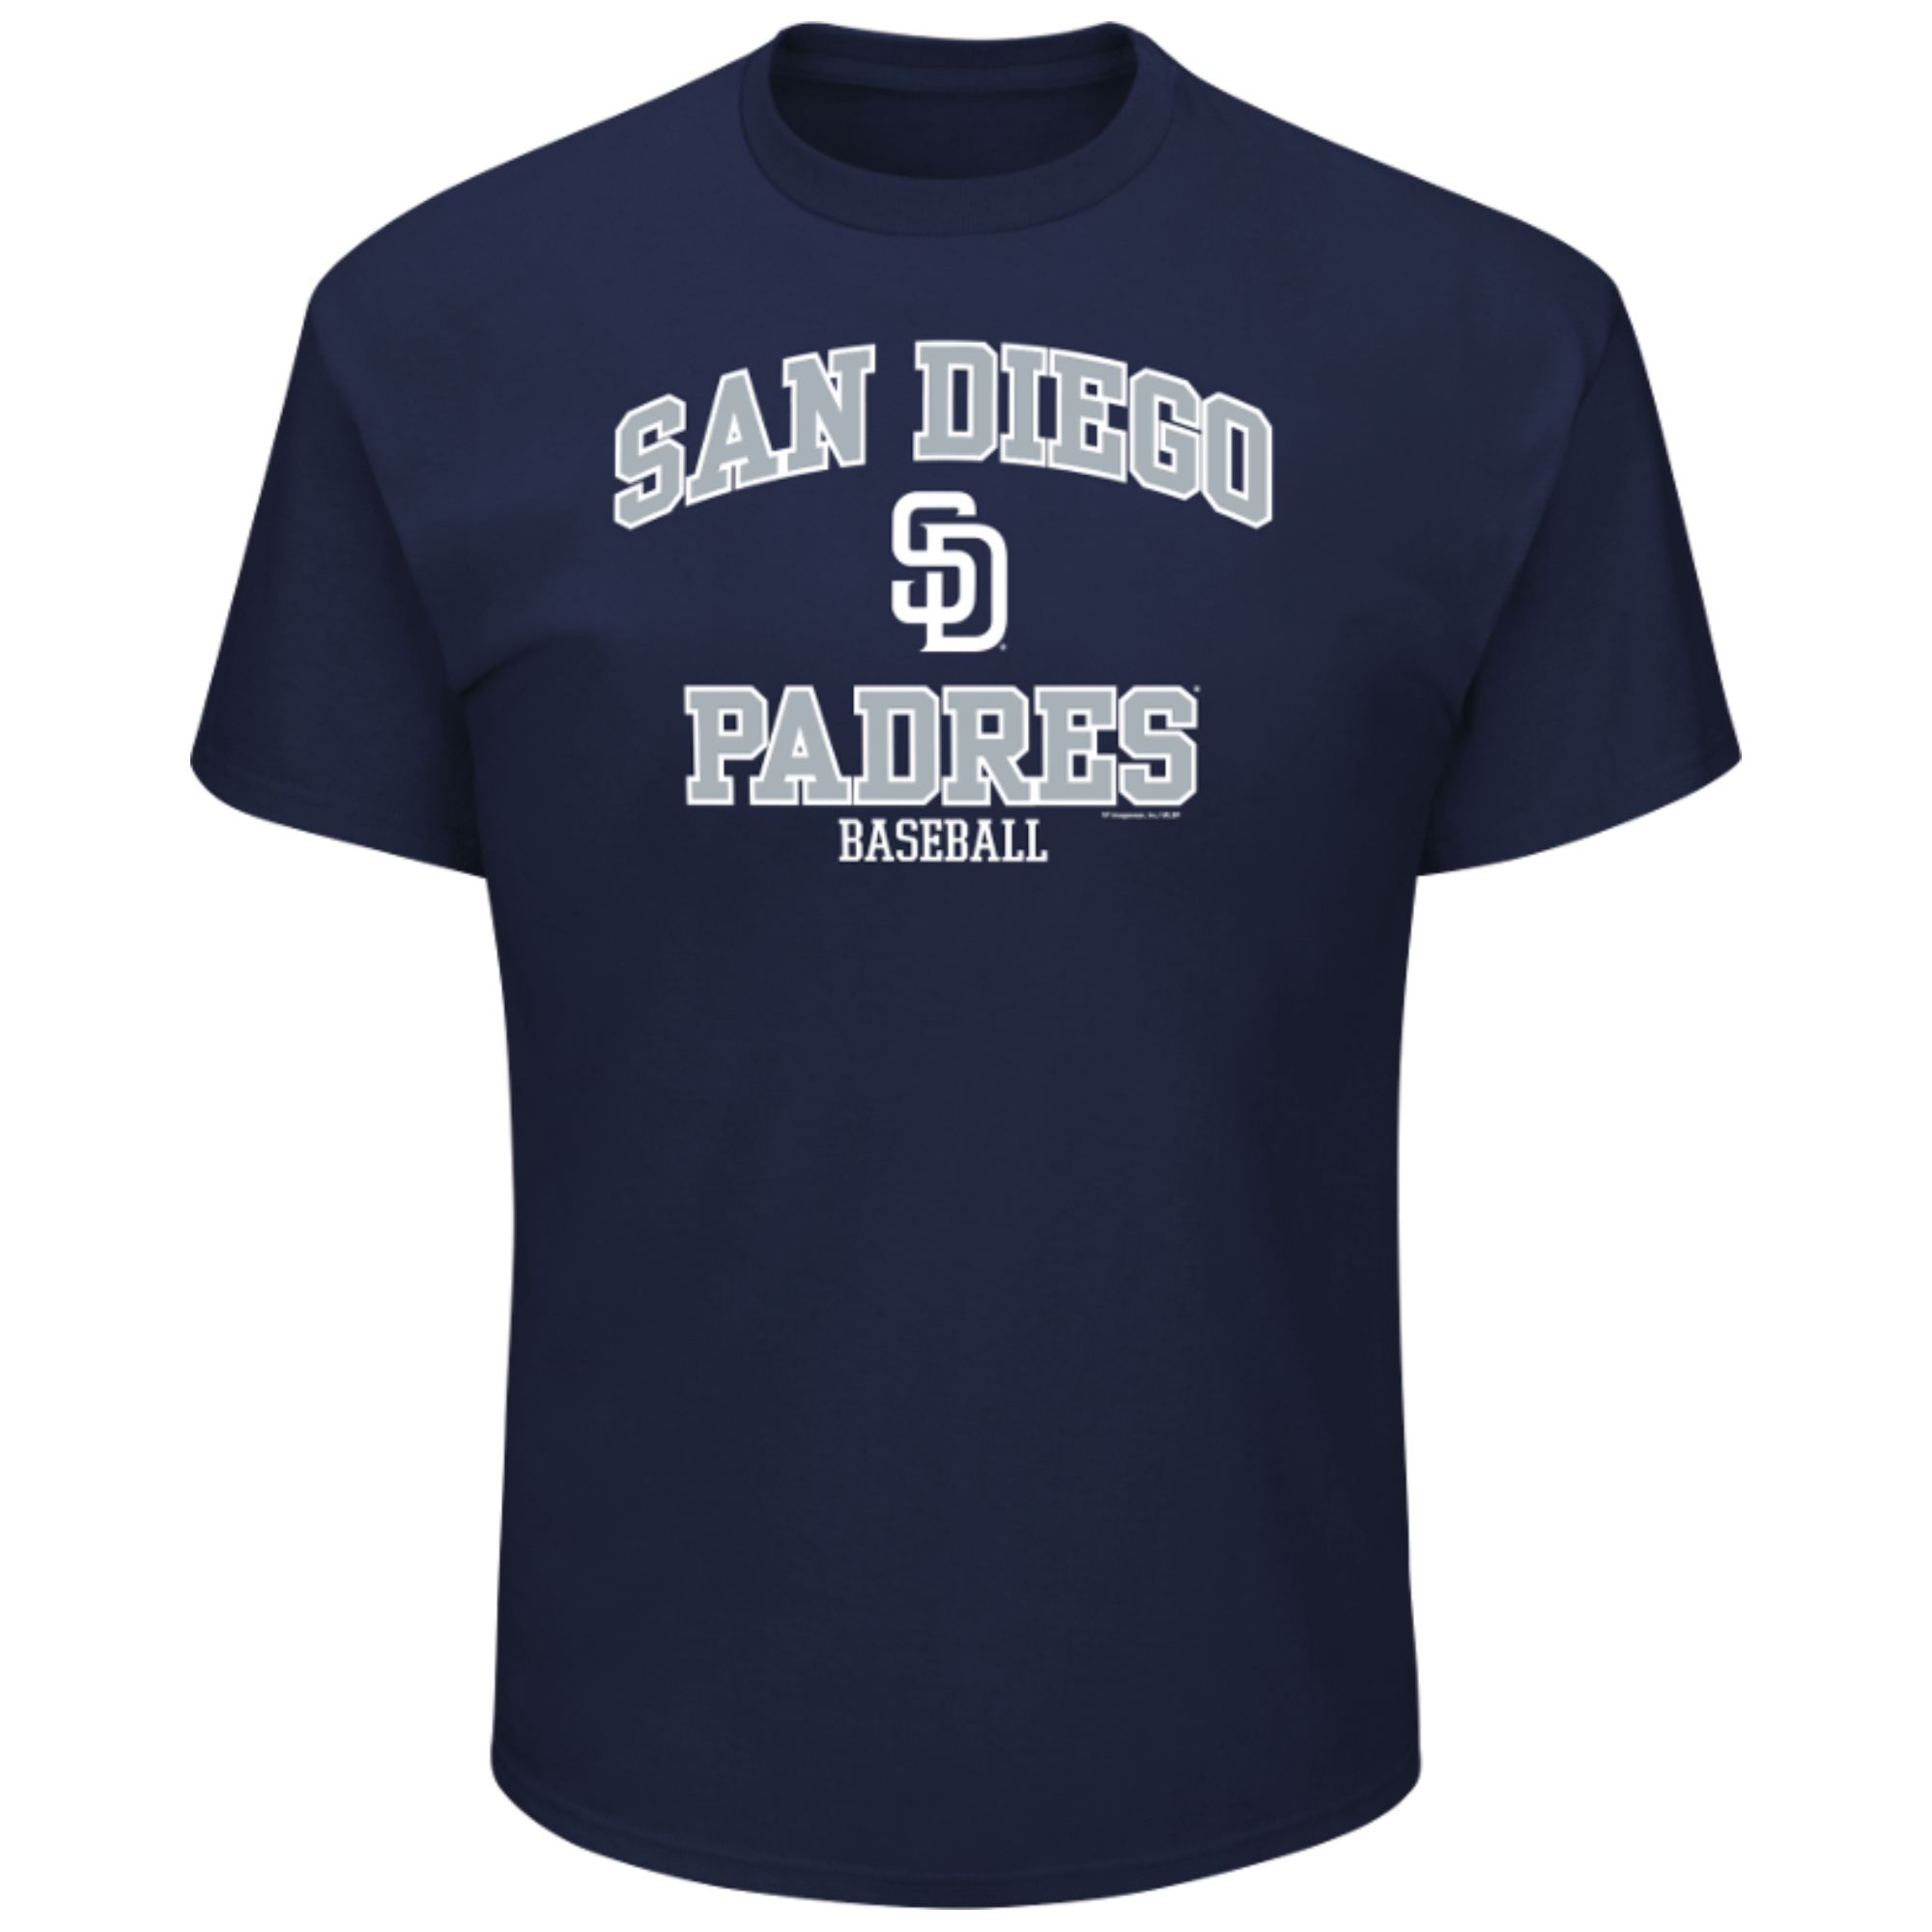 Men's Majestic Navy San Diego Padres High Praise Team T-Shirt